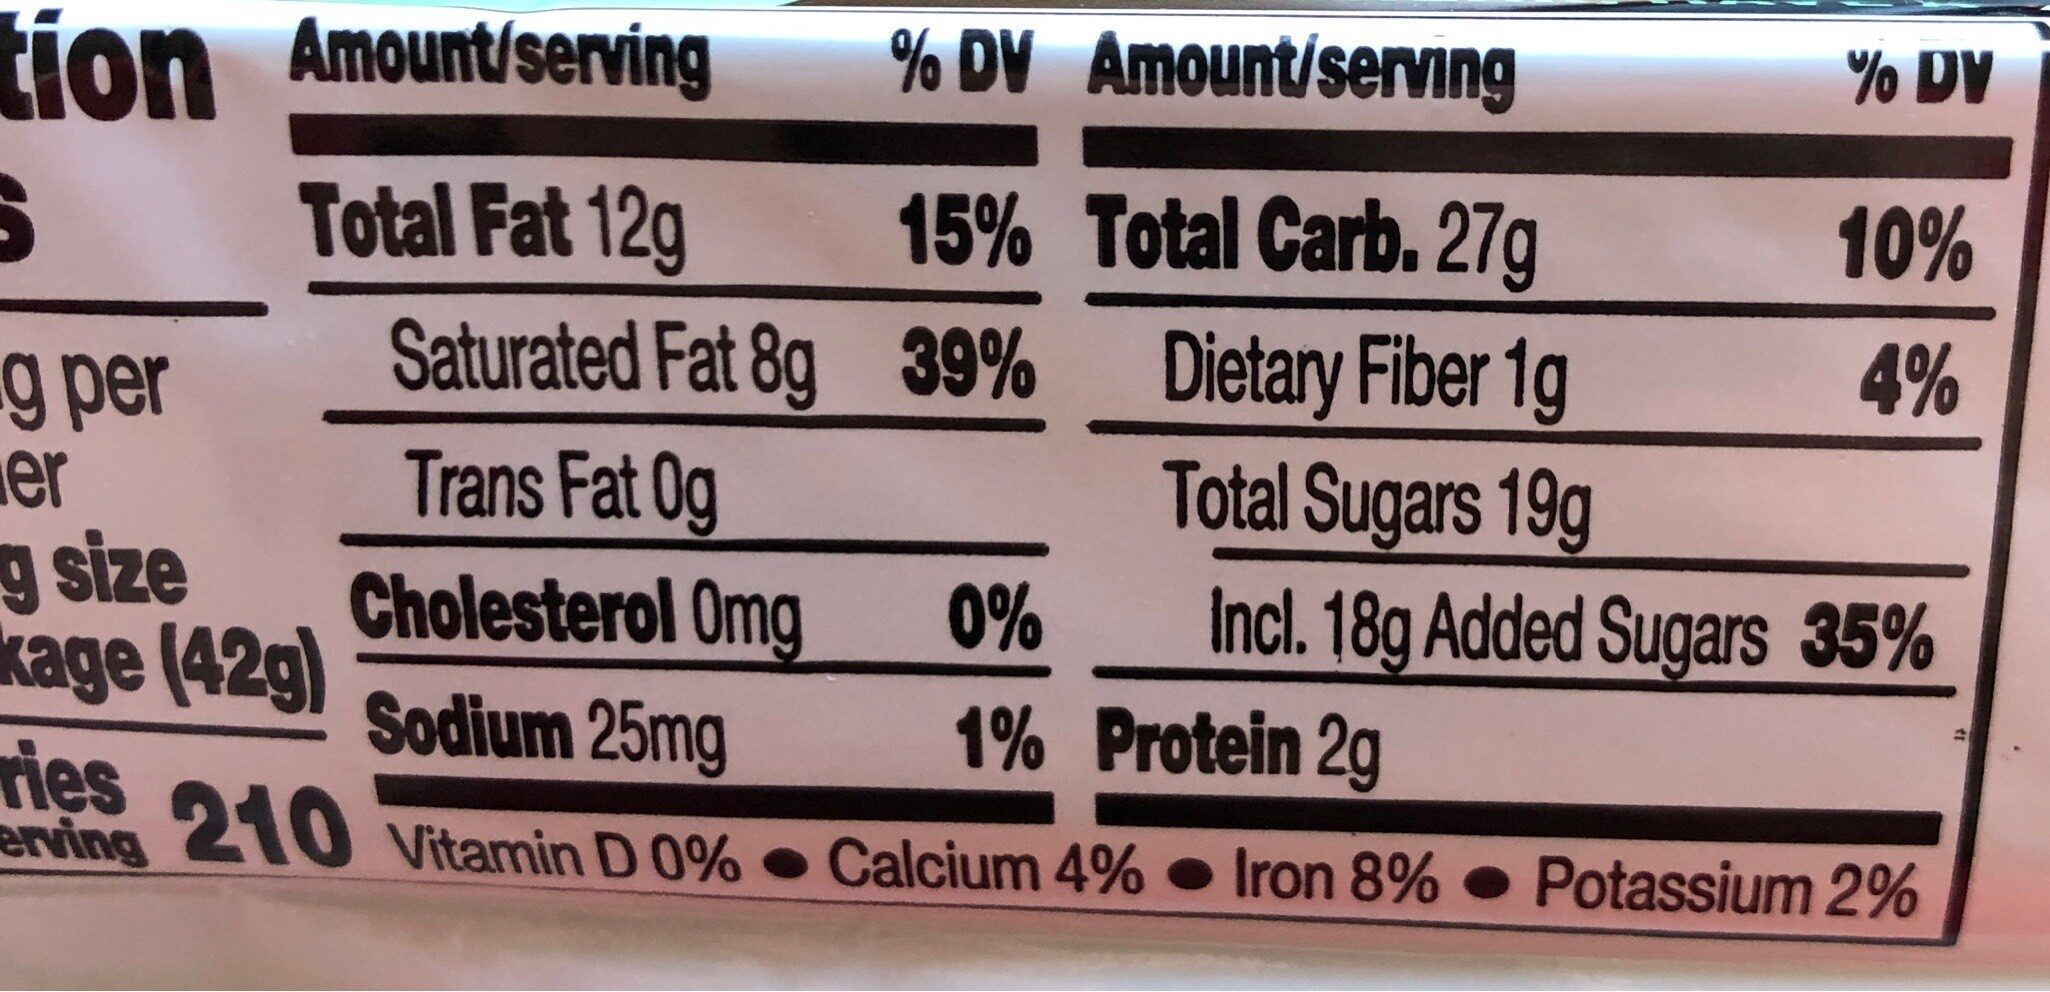 Kit kat duo dark chocolate mint chocolate bar - Nutrition facts - en